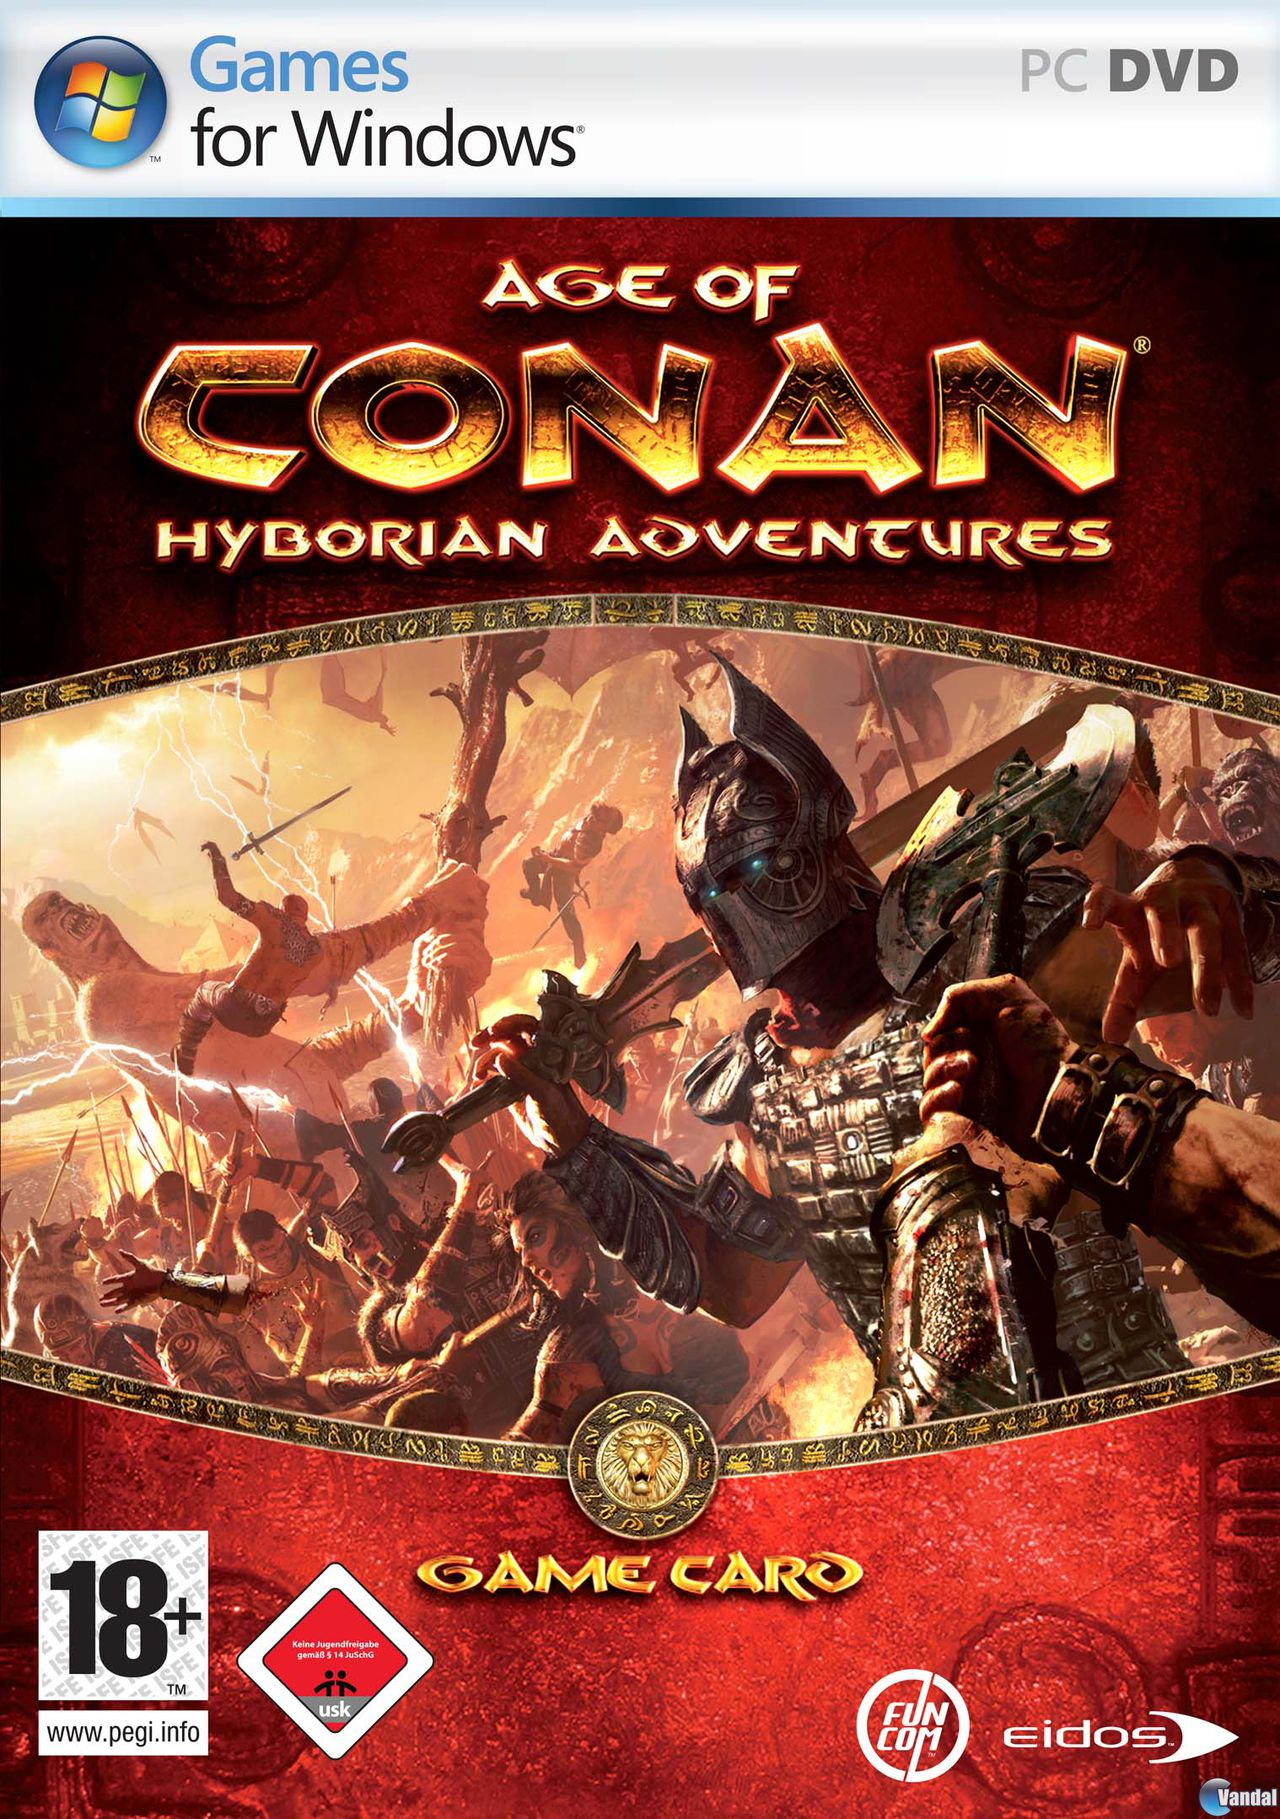 Age of conan requisitos